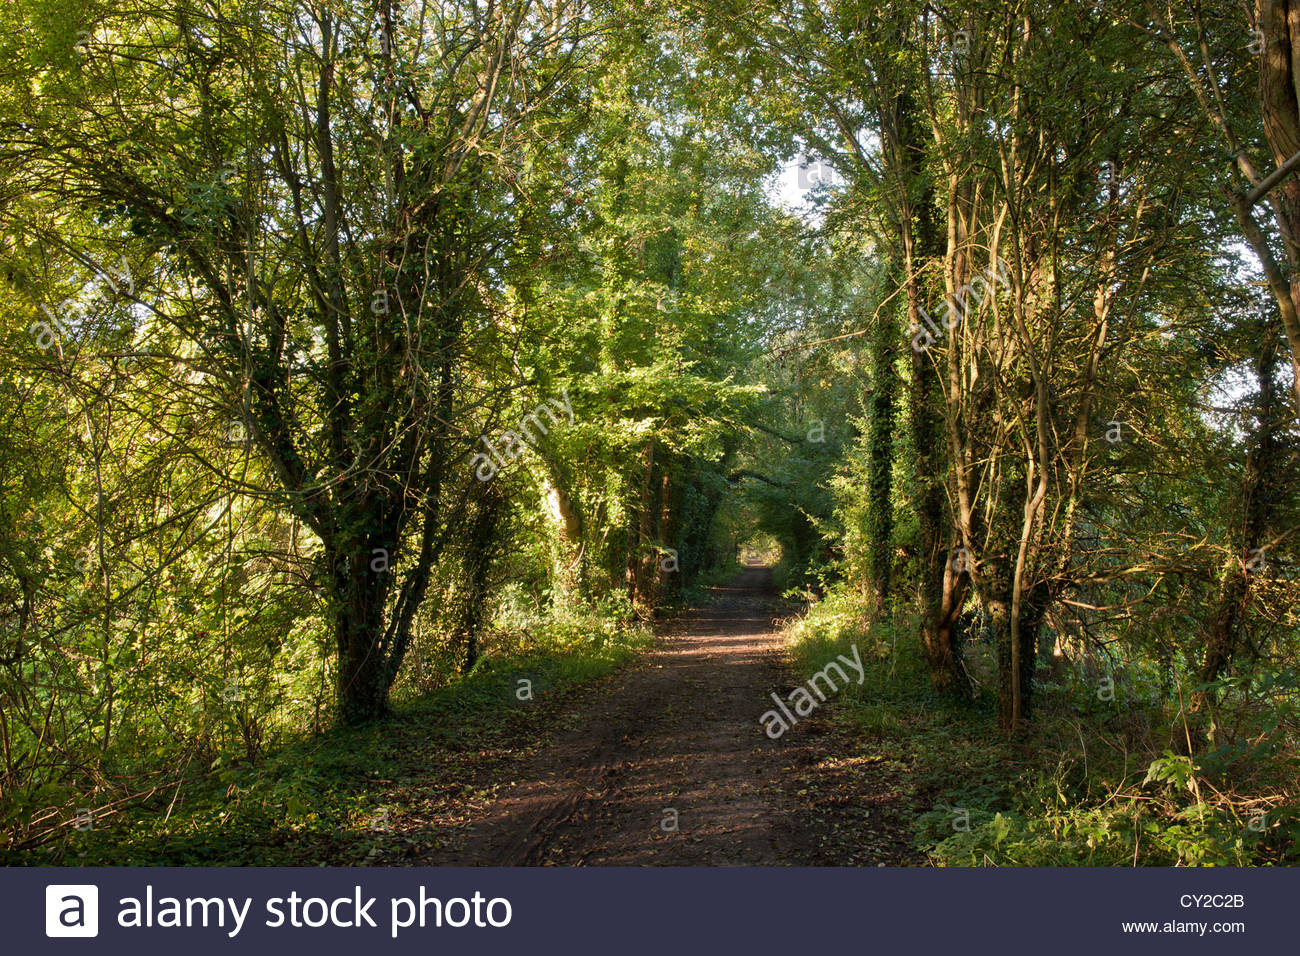 disused railway line public footpath bridleway walking cycle cycling rural country green road hollow covered leafy - Stock Image